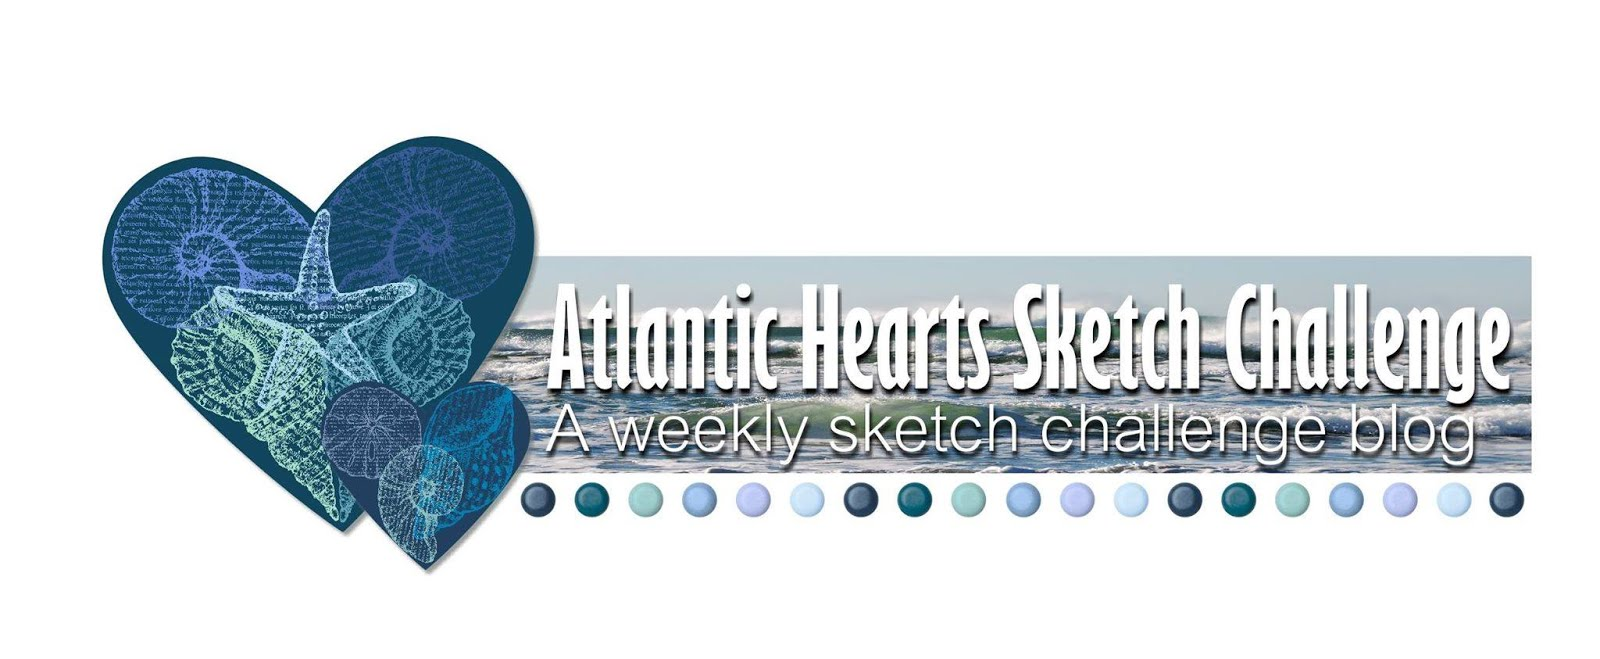 Altantic Hearts Sketch Challenge